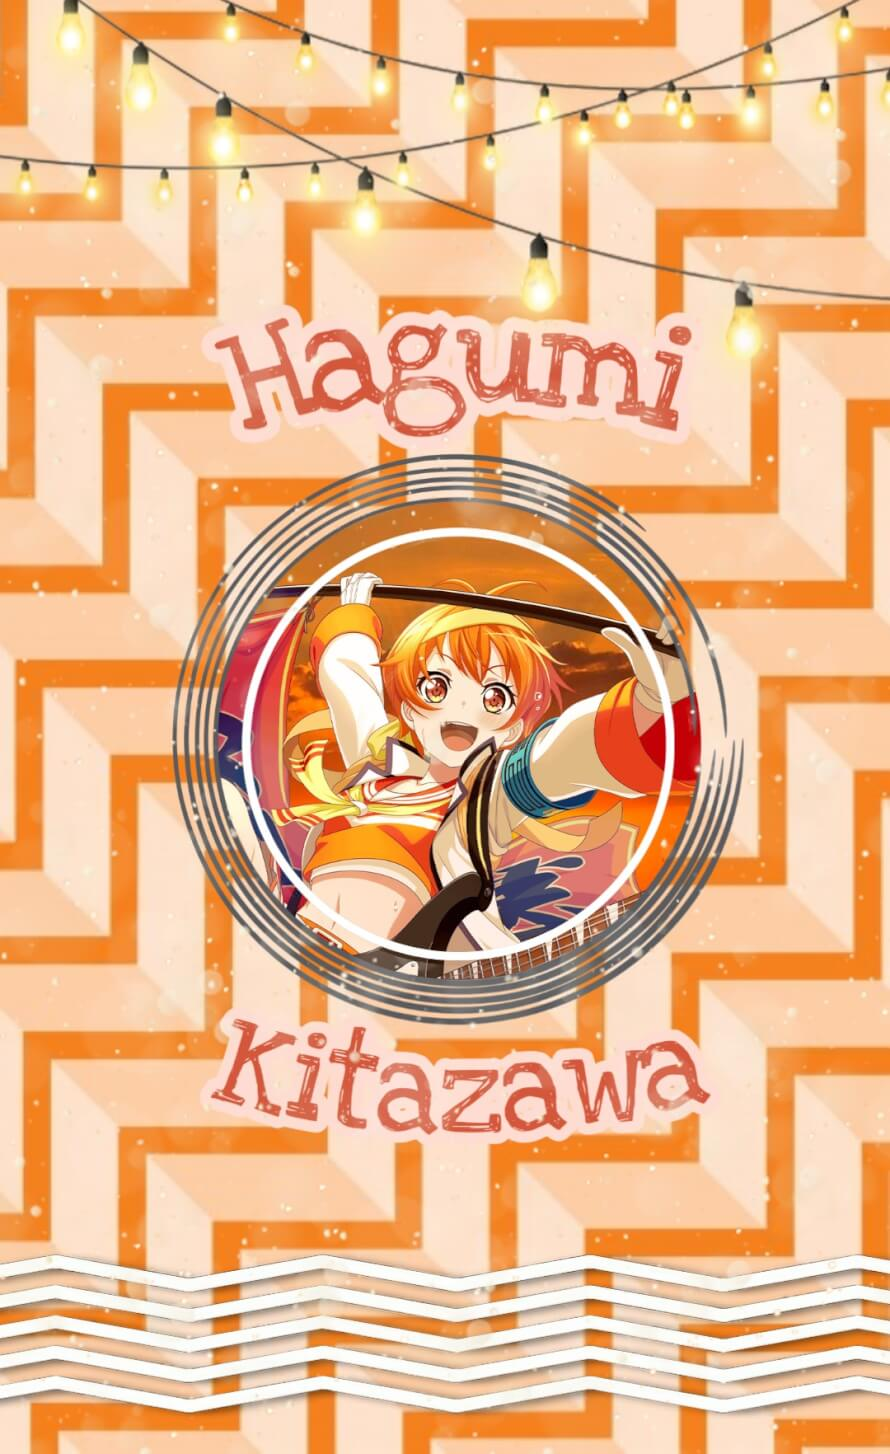 Next up on the amateur edits of HHW, is Hagumi! I'll probably do one for Misaki next.